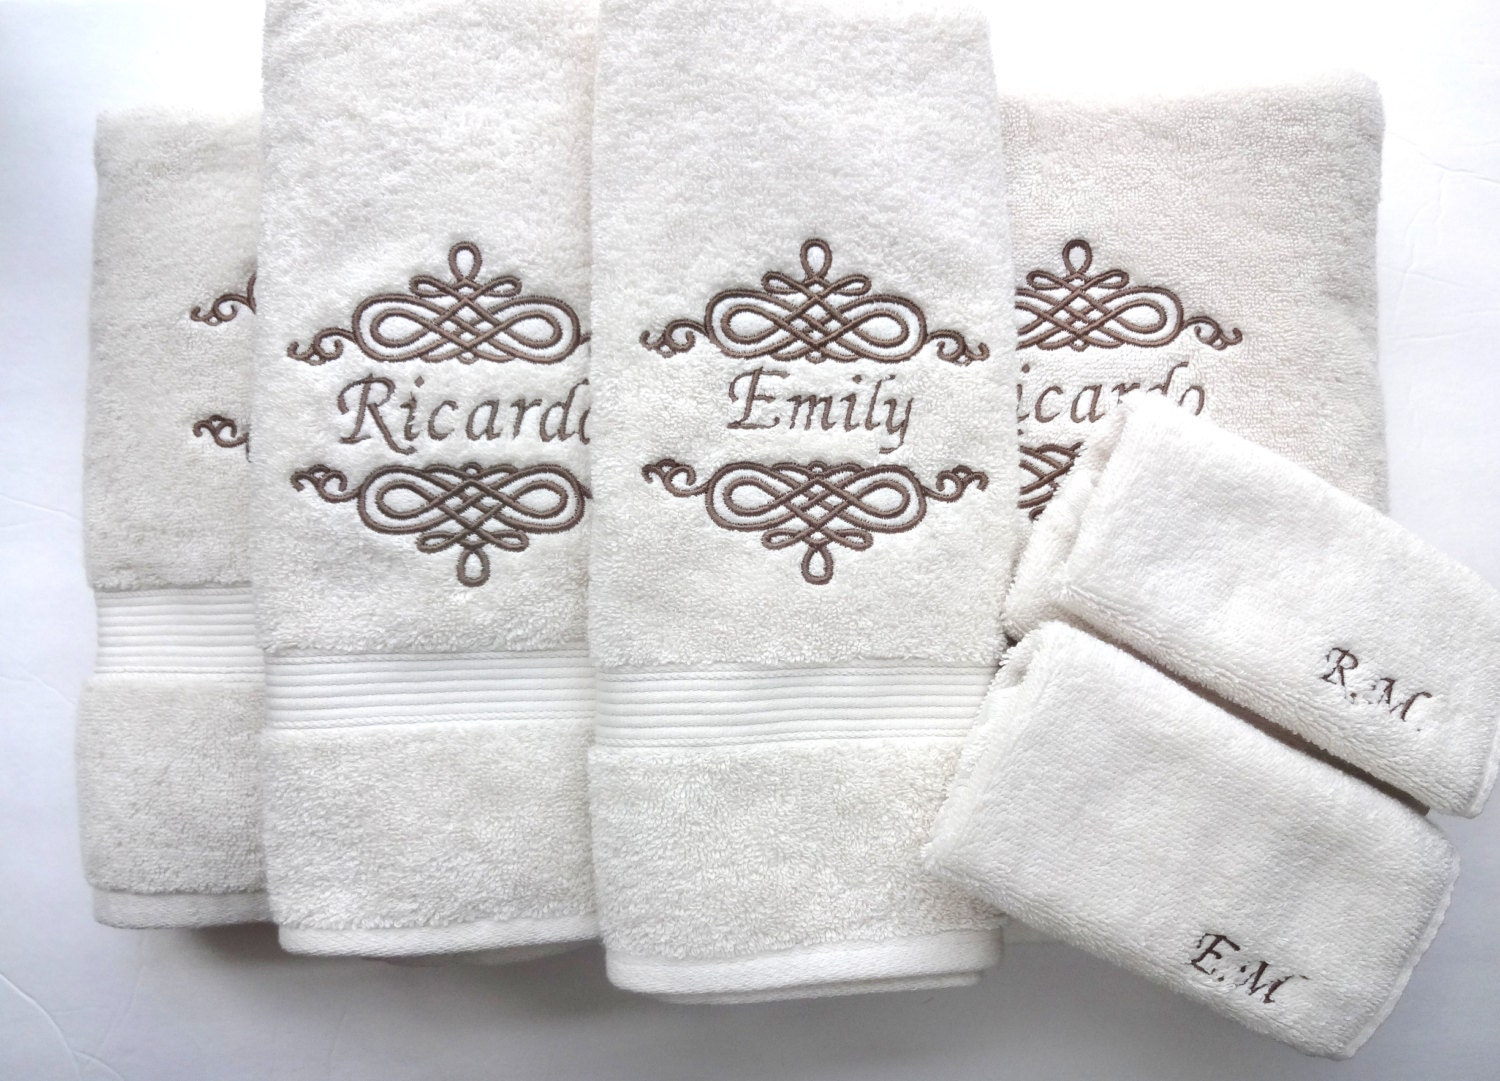 il_fullxfull.603987601_8fp8 Embroidery Designs For Bathroom Hand Towels on blank bibs for embroidery, wholesale tea towels for embroidery, linen tea towels for embroidery,